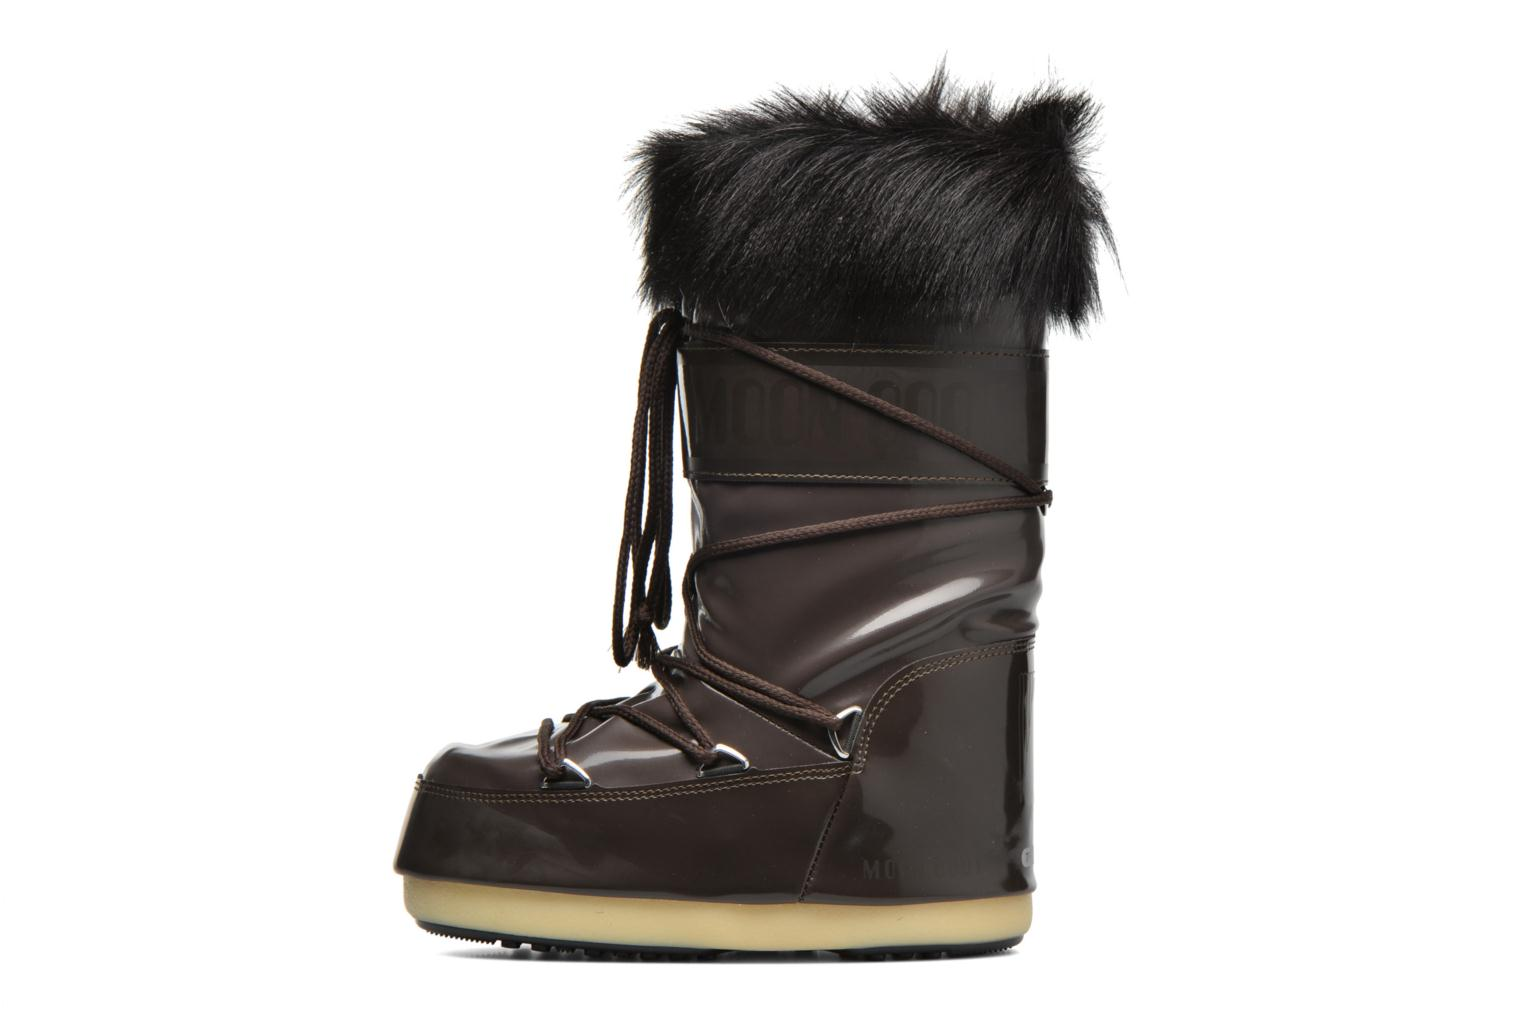 Bottes Moon Boot Vail E Marron vue face